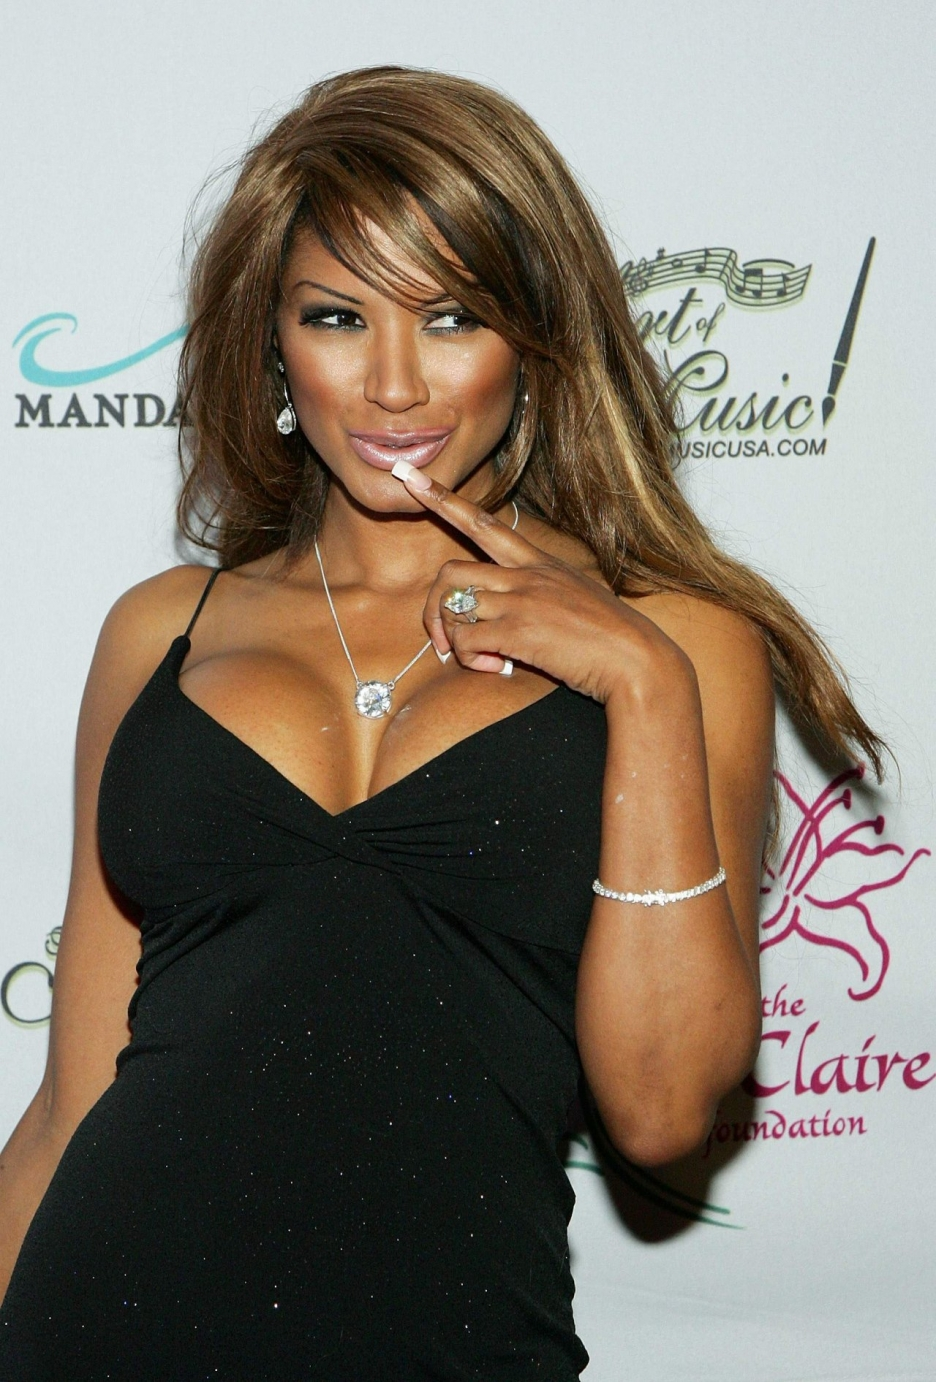 The 49-year old daughter of father (?) and mother(?), 170 cm tall Traci Bingham in 2017 photo